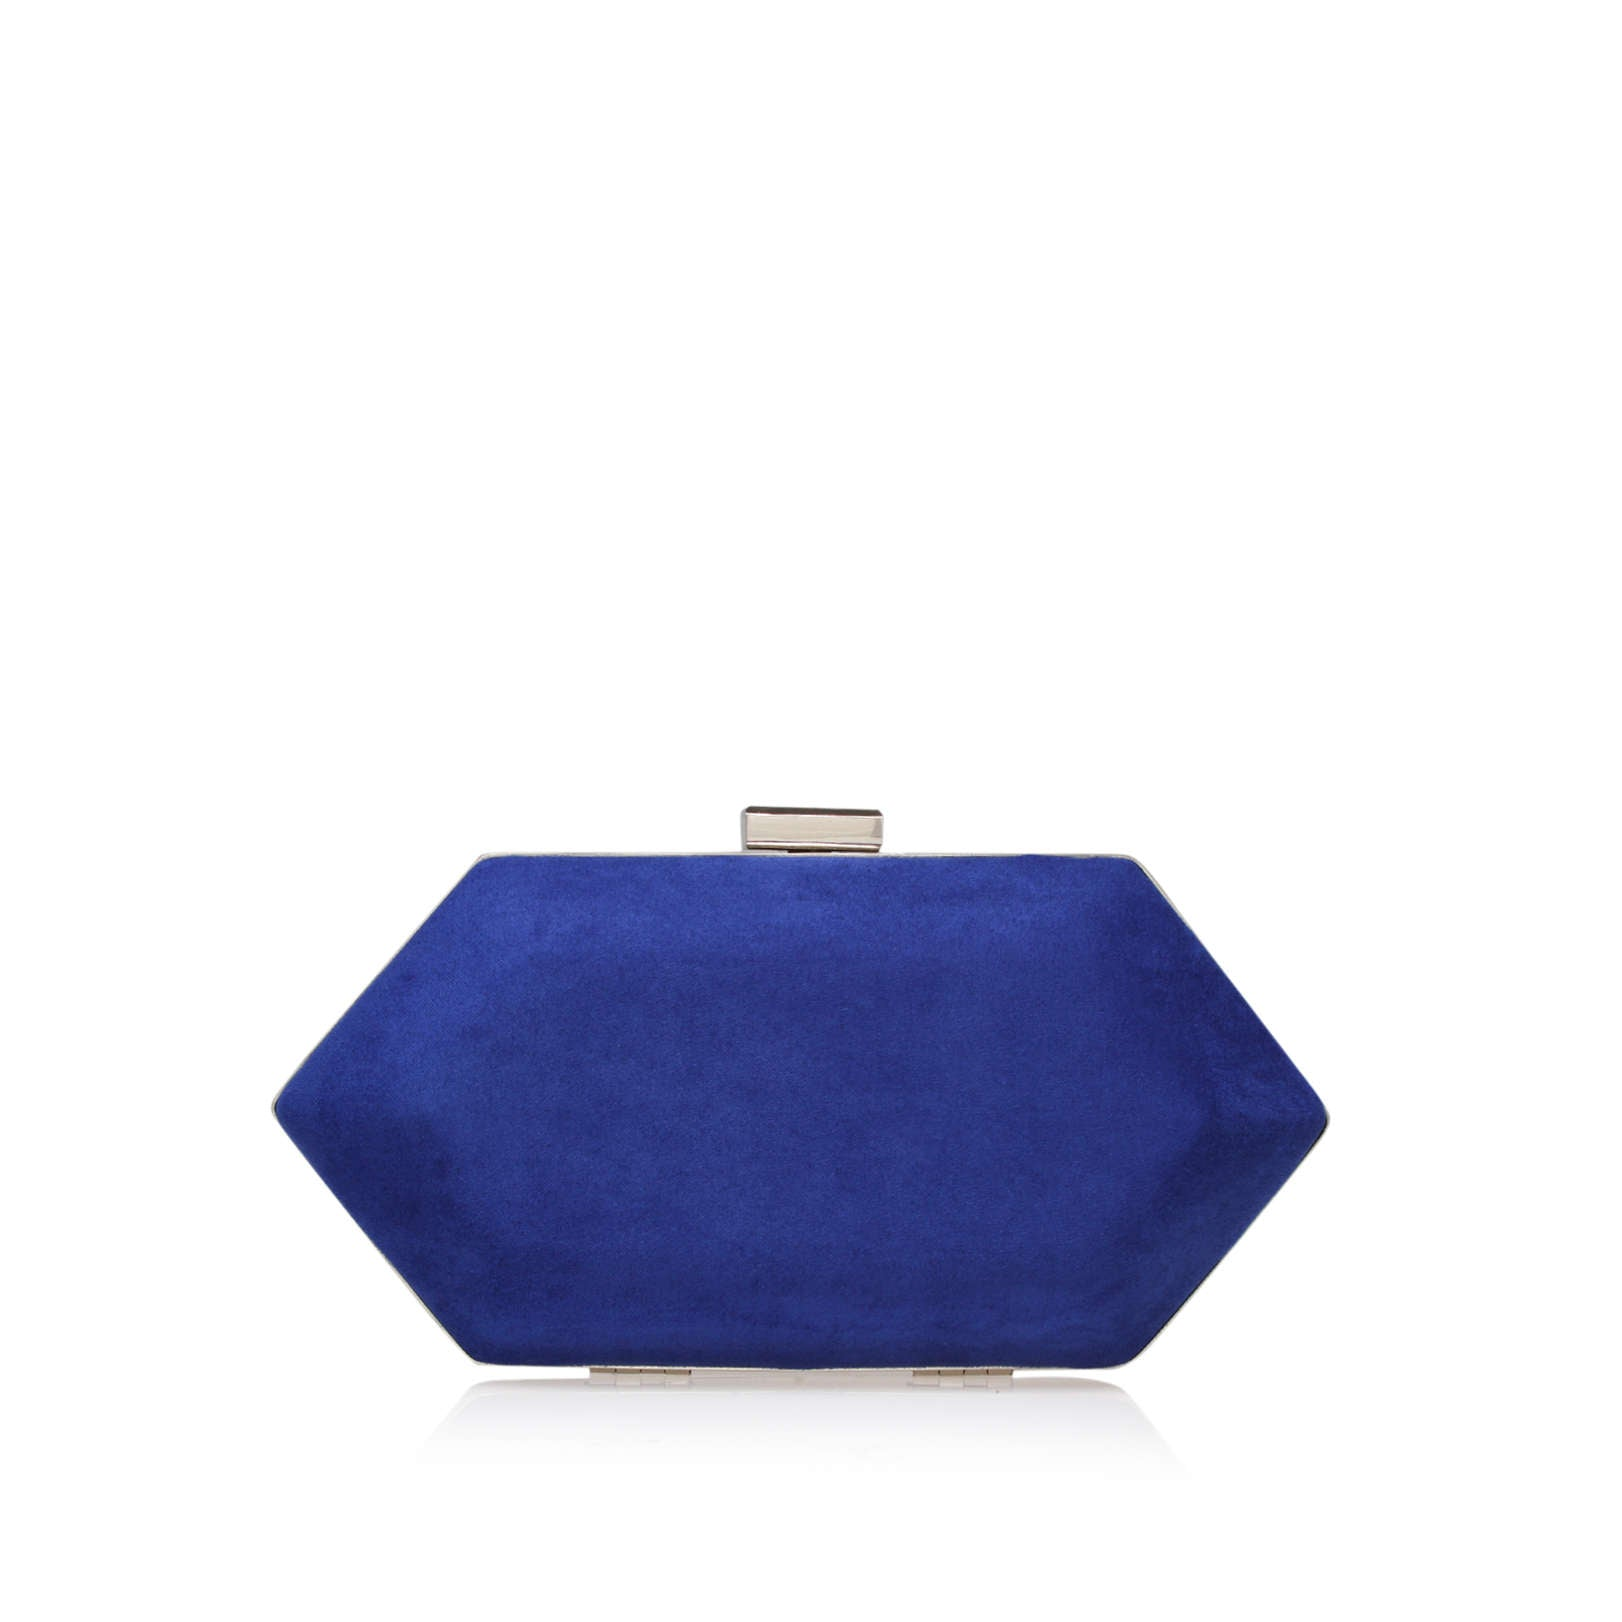 Kurt Geiger Miss KG Jewel 2 Blue Womens Clutch Bag